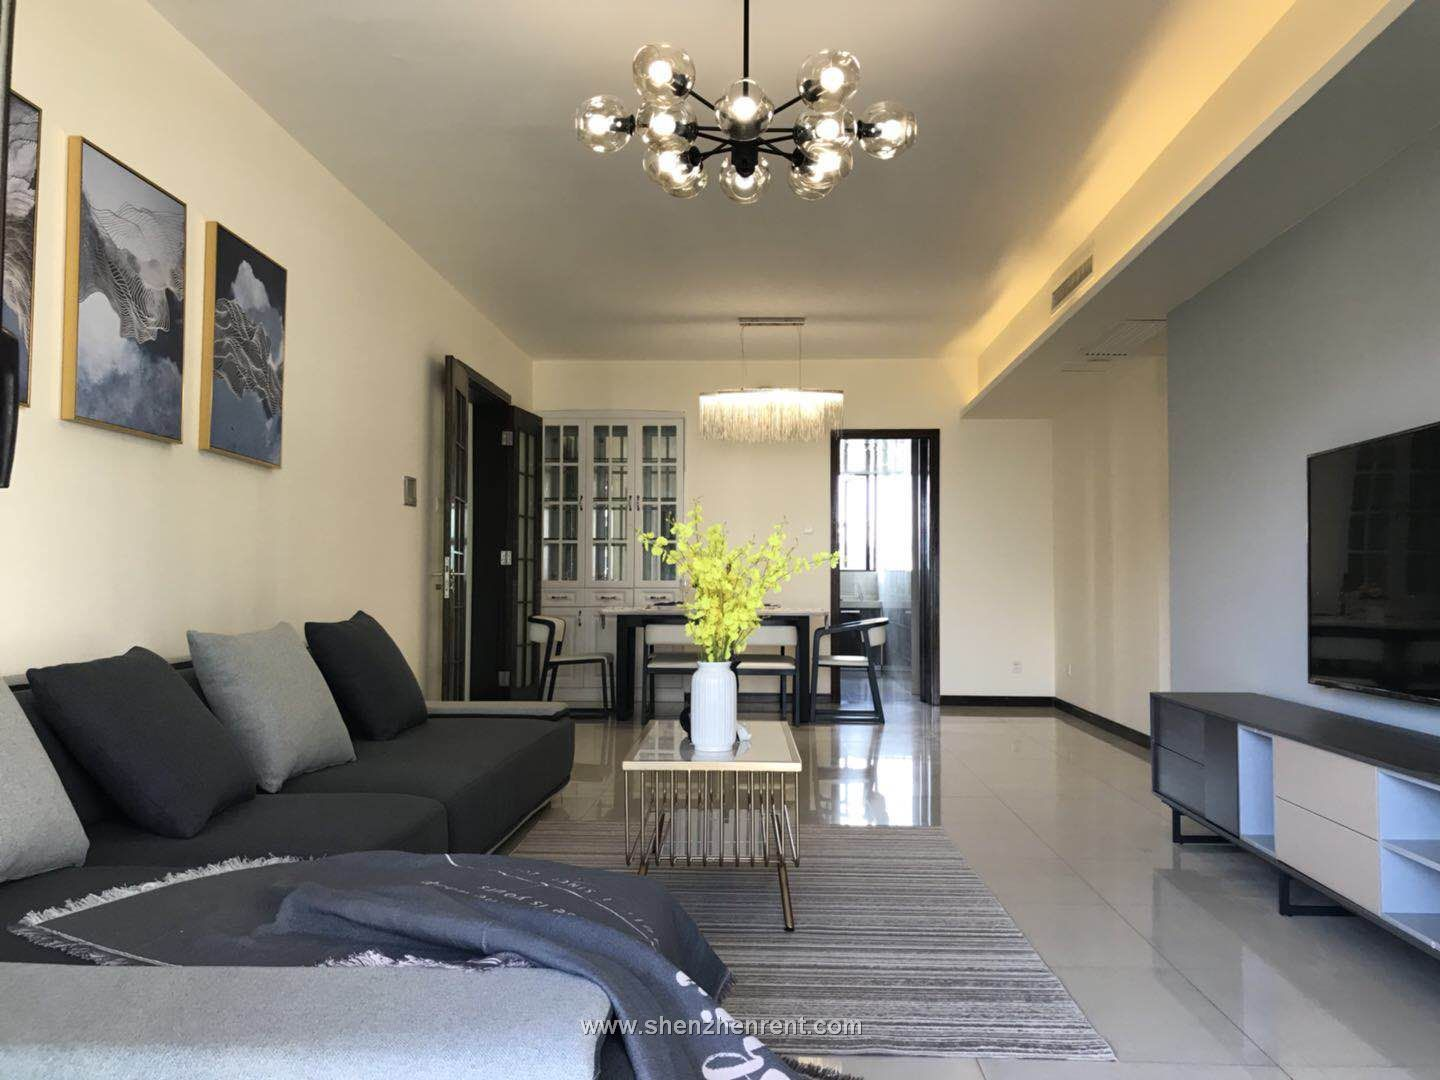 Amazing 5 bedroms apartment in shekou for rent